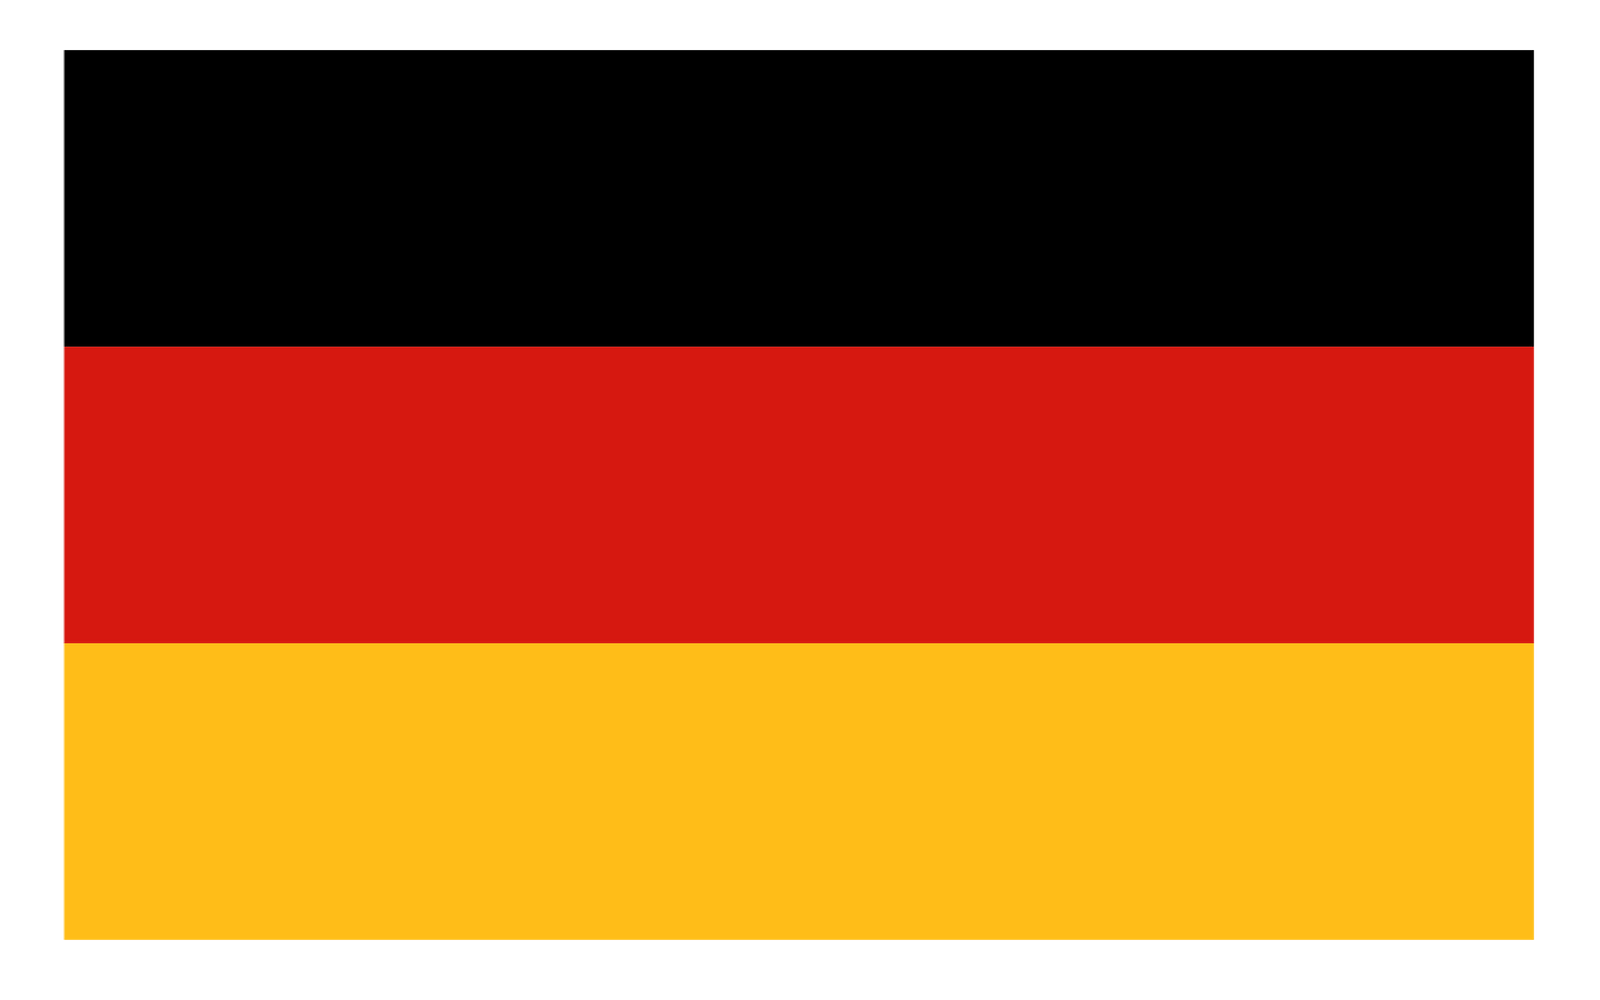 Flag germany clipart transparent stock 53+ German Flag Clipart | ClipartLook transparent stock